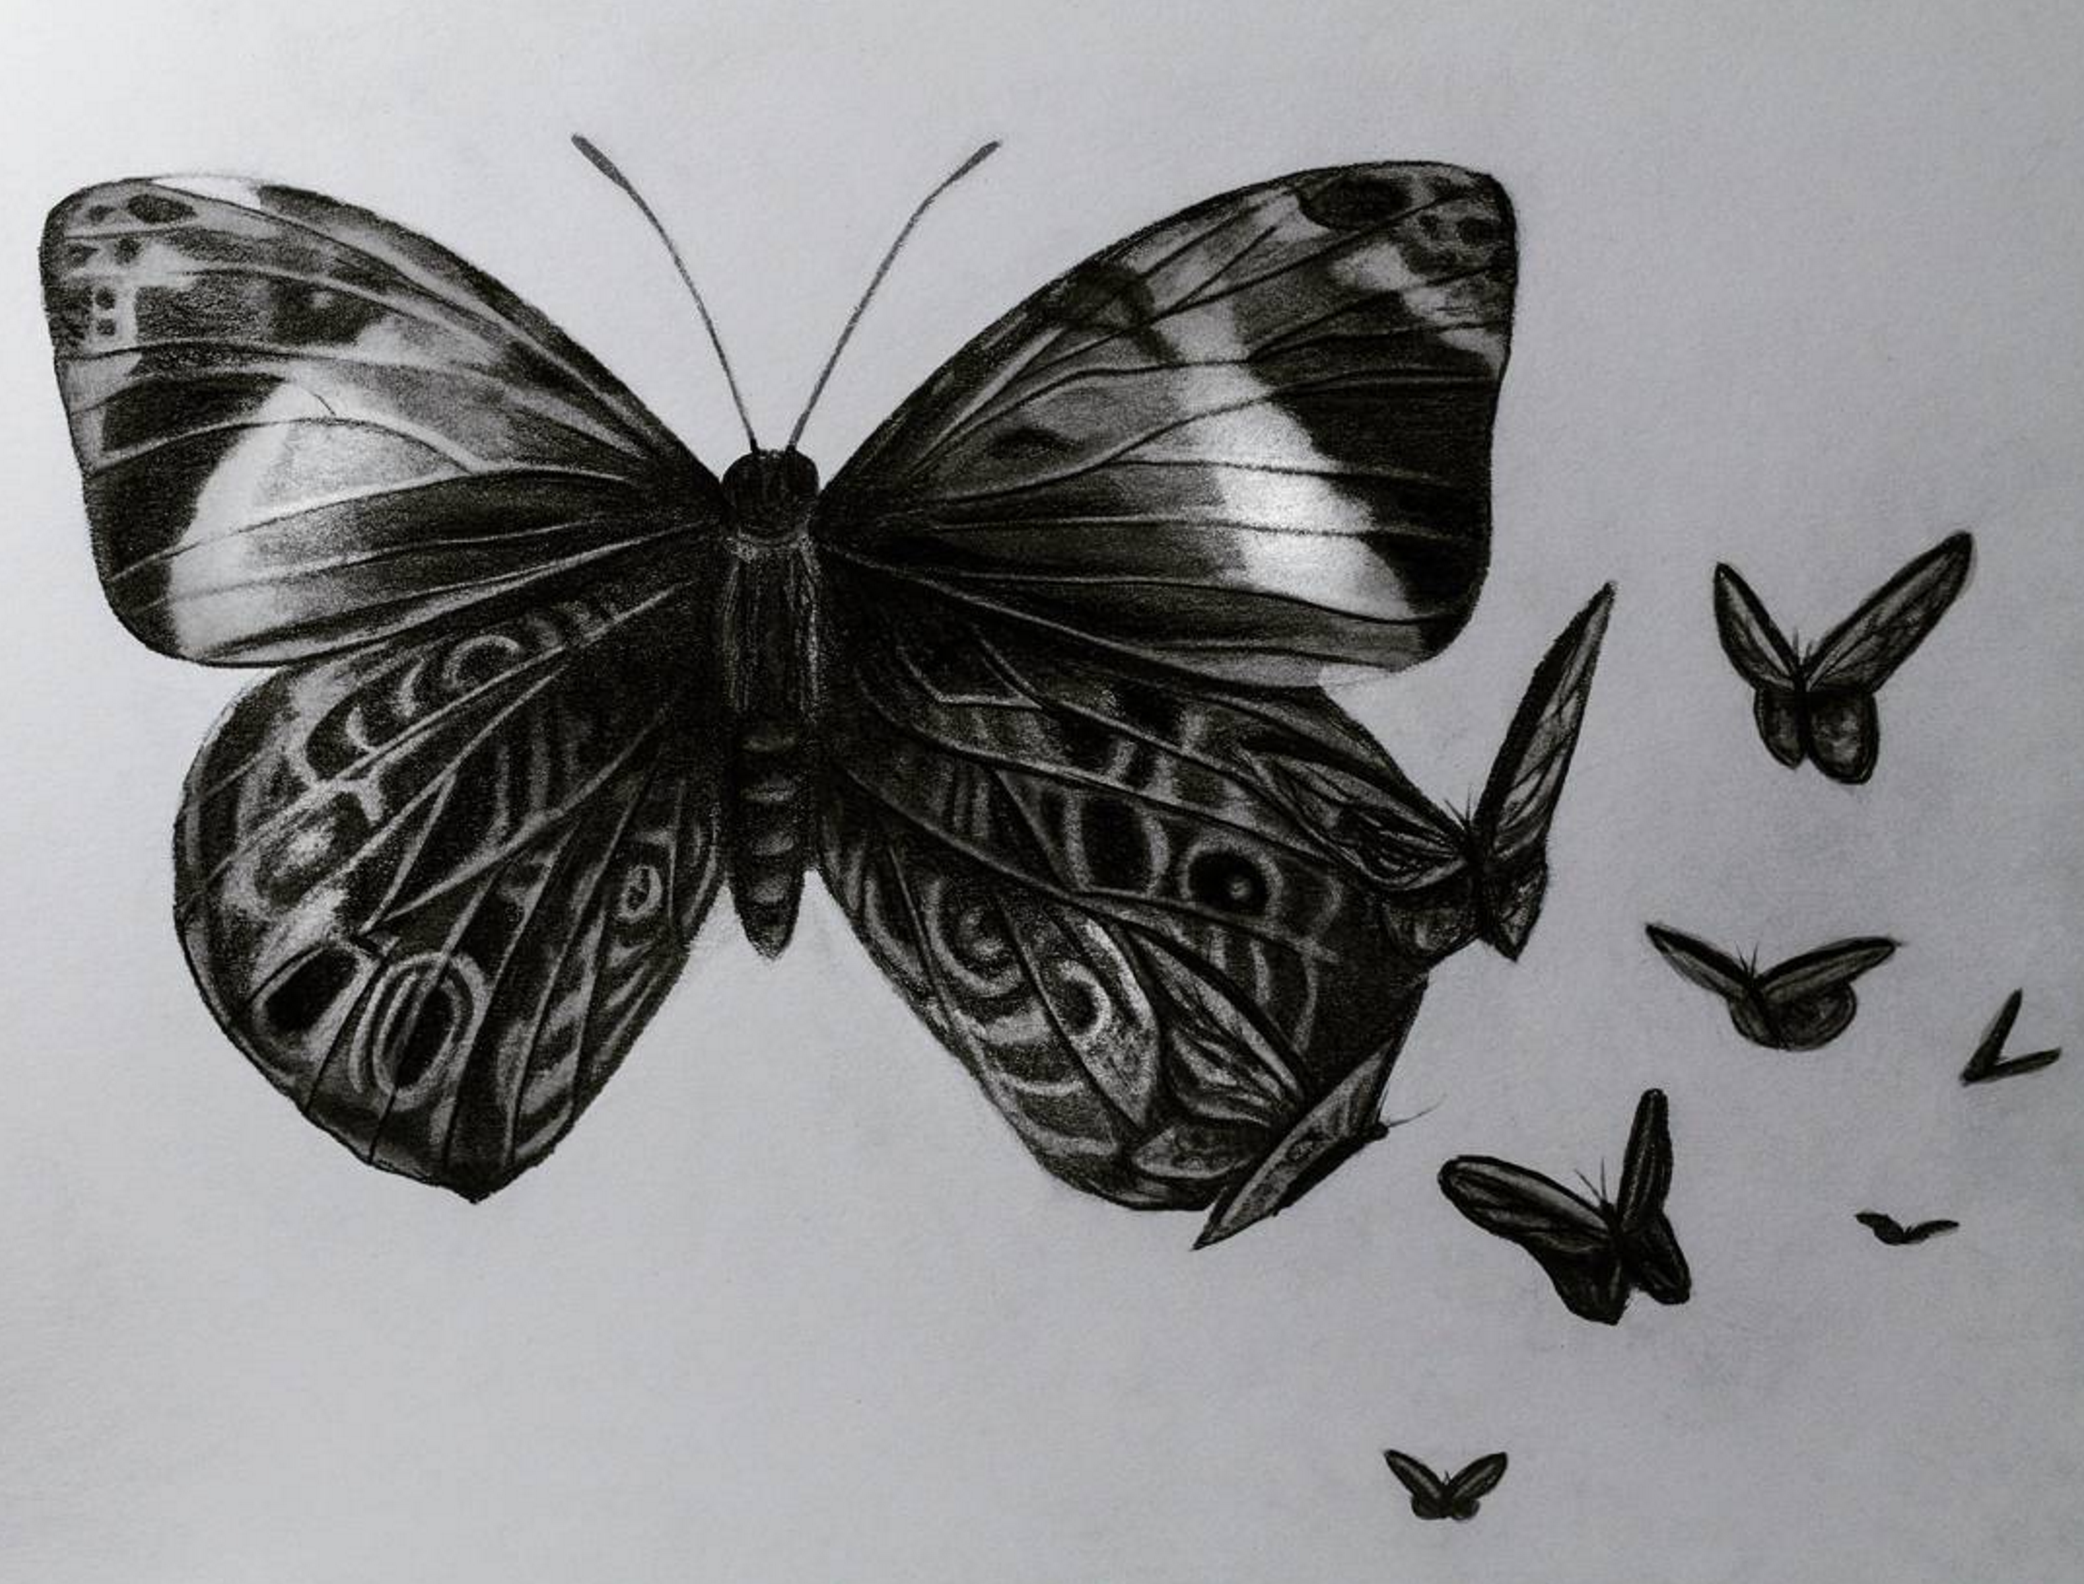 Butterfly design, 2017, graphite on paper, 9x12""